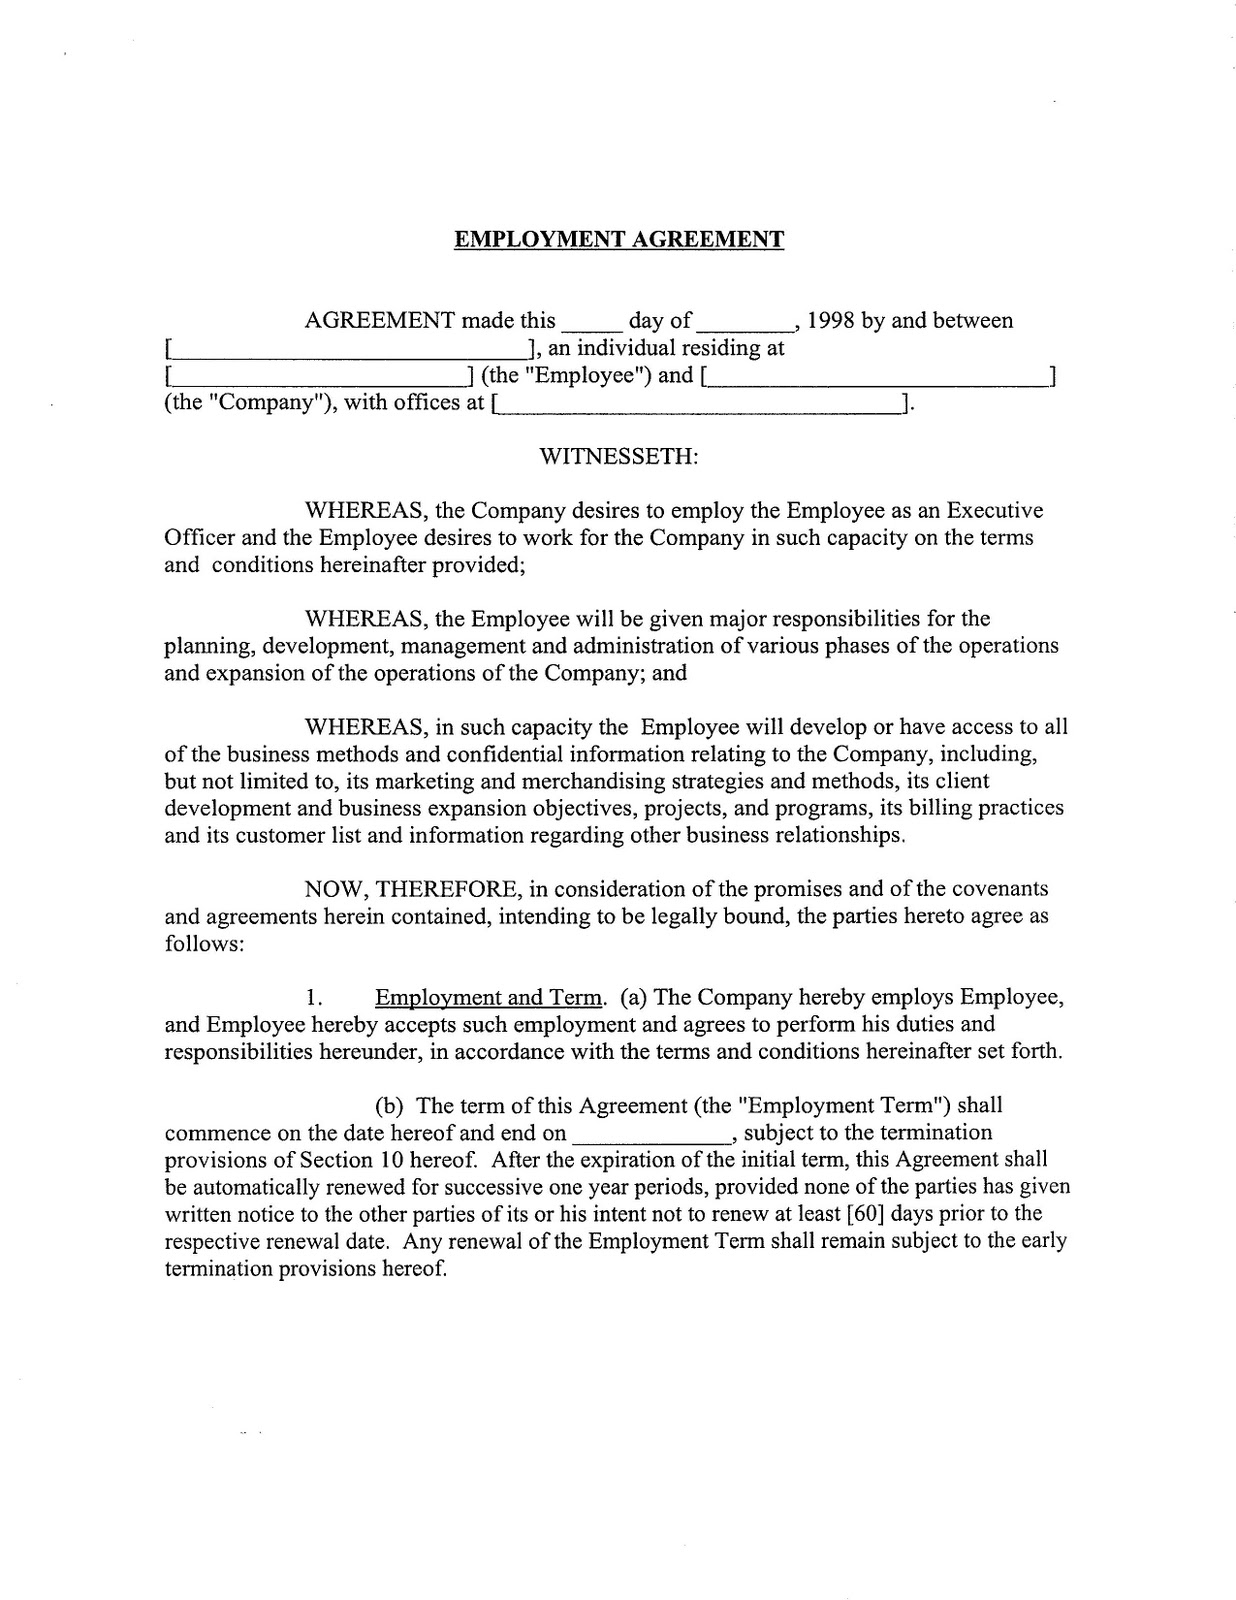 Employment Agreement Form: